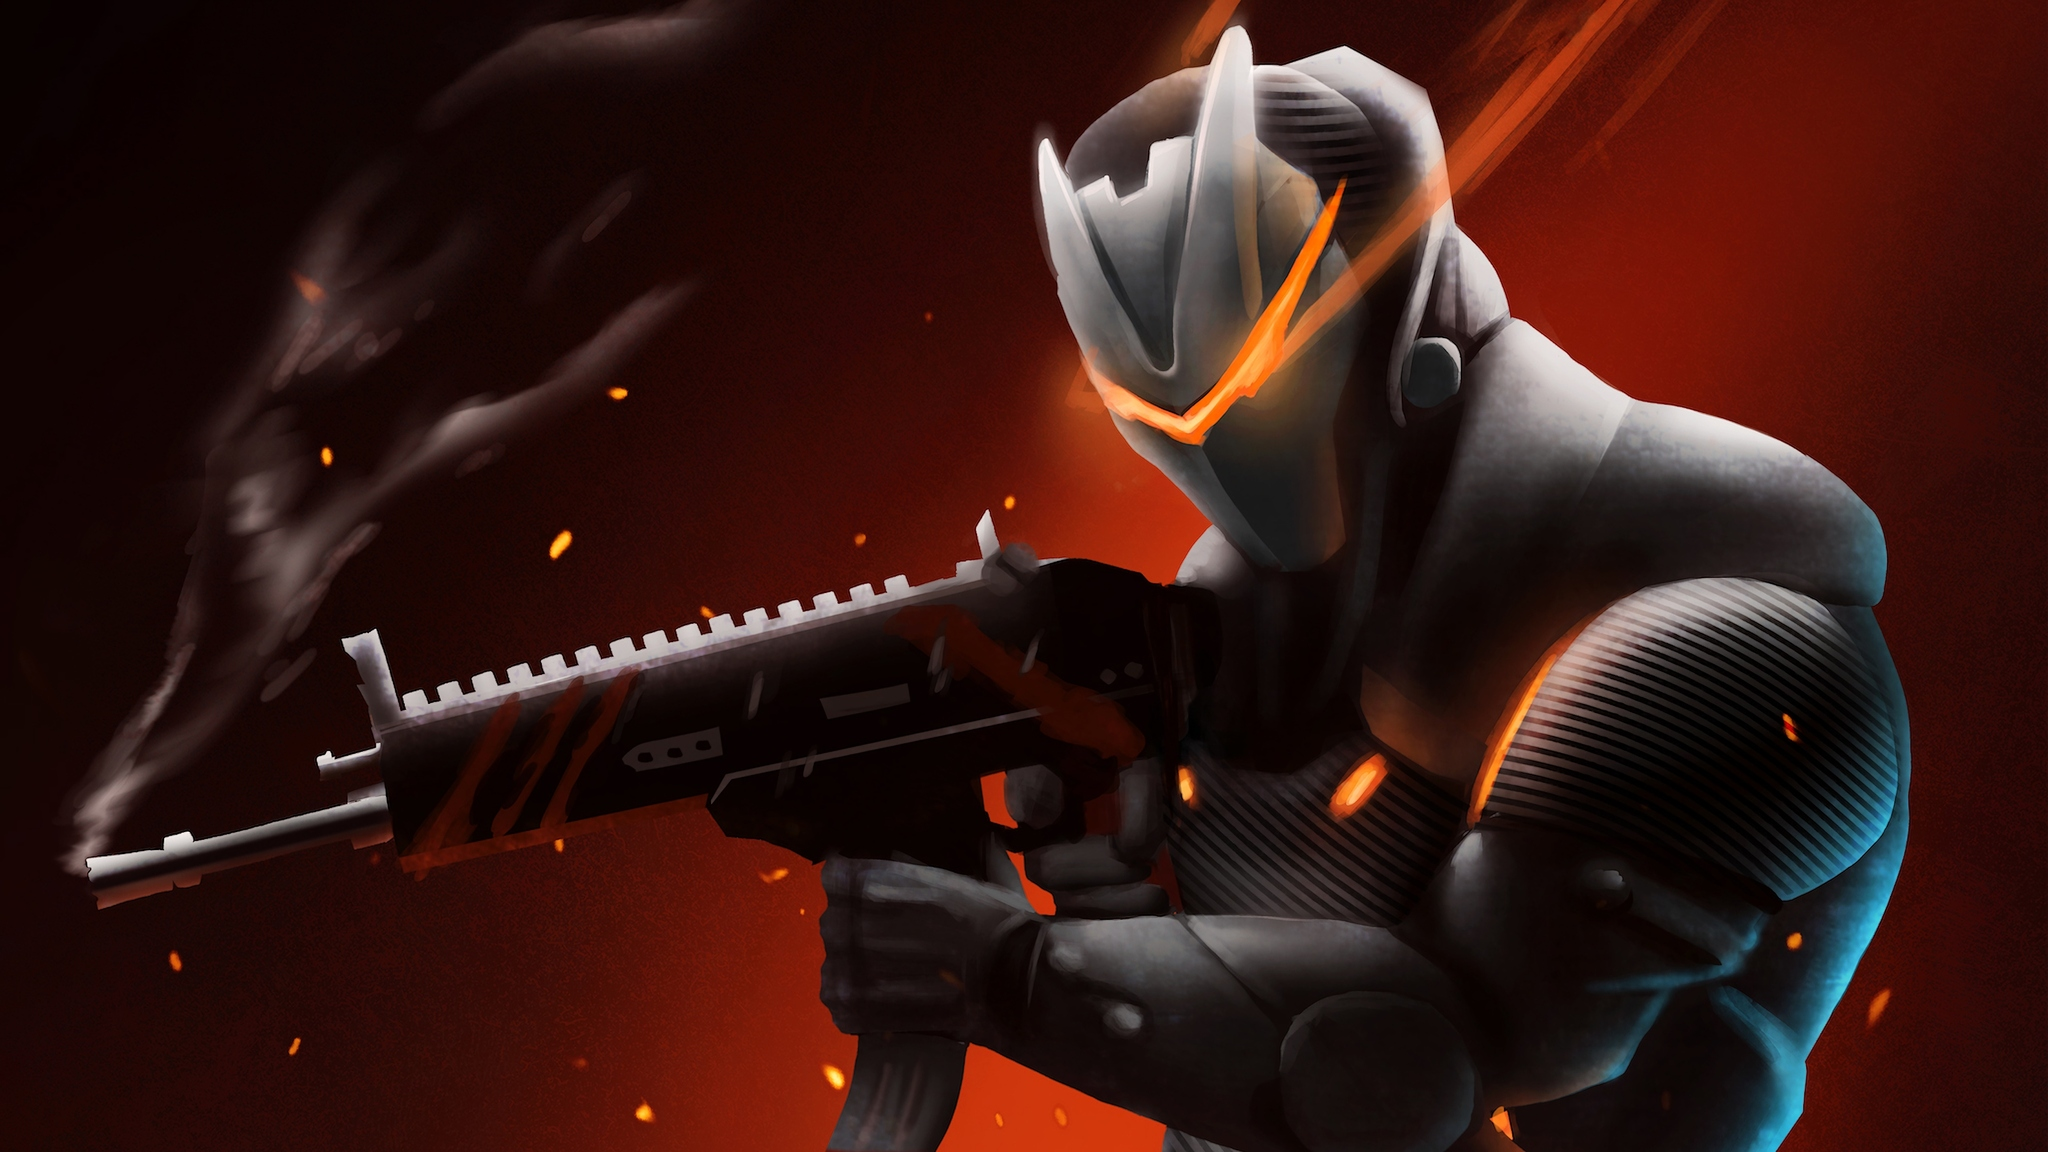 2048x1152 Omega With Rifle Fortnite Battle Royale 2048x1152